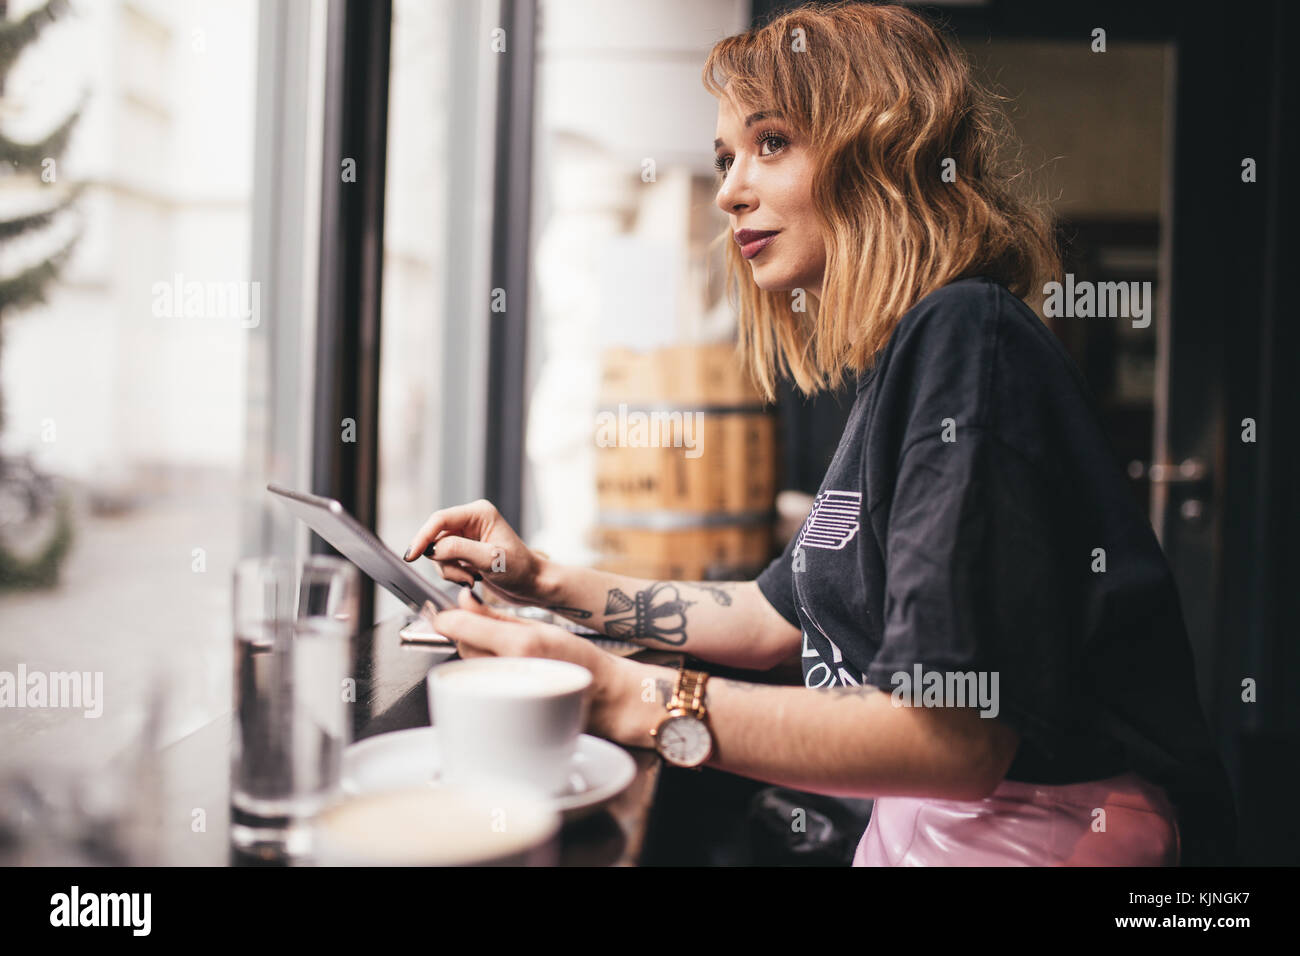 Pretty girl smiling and looking out of a bar window - Stock Image